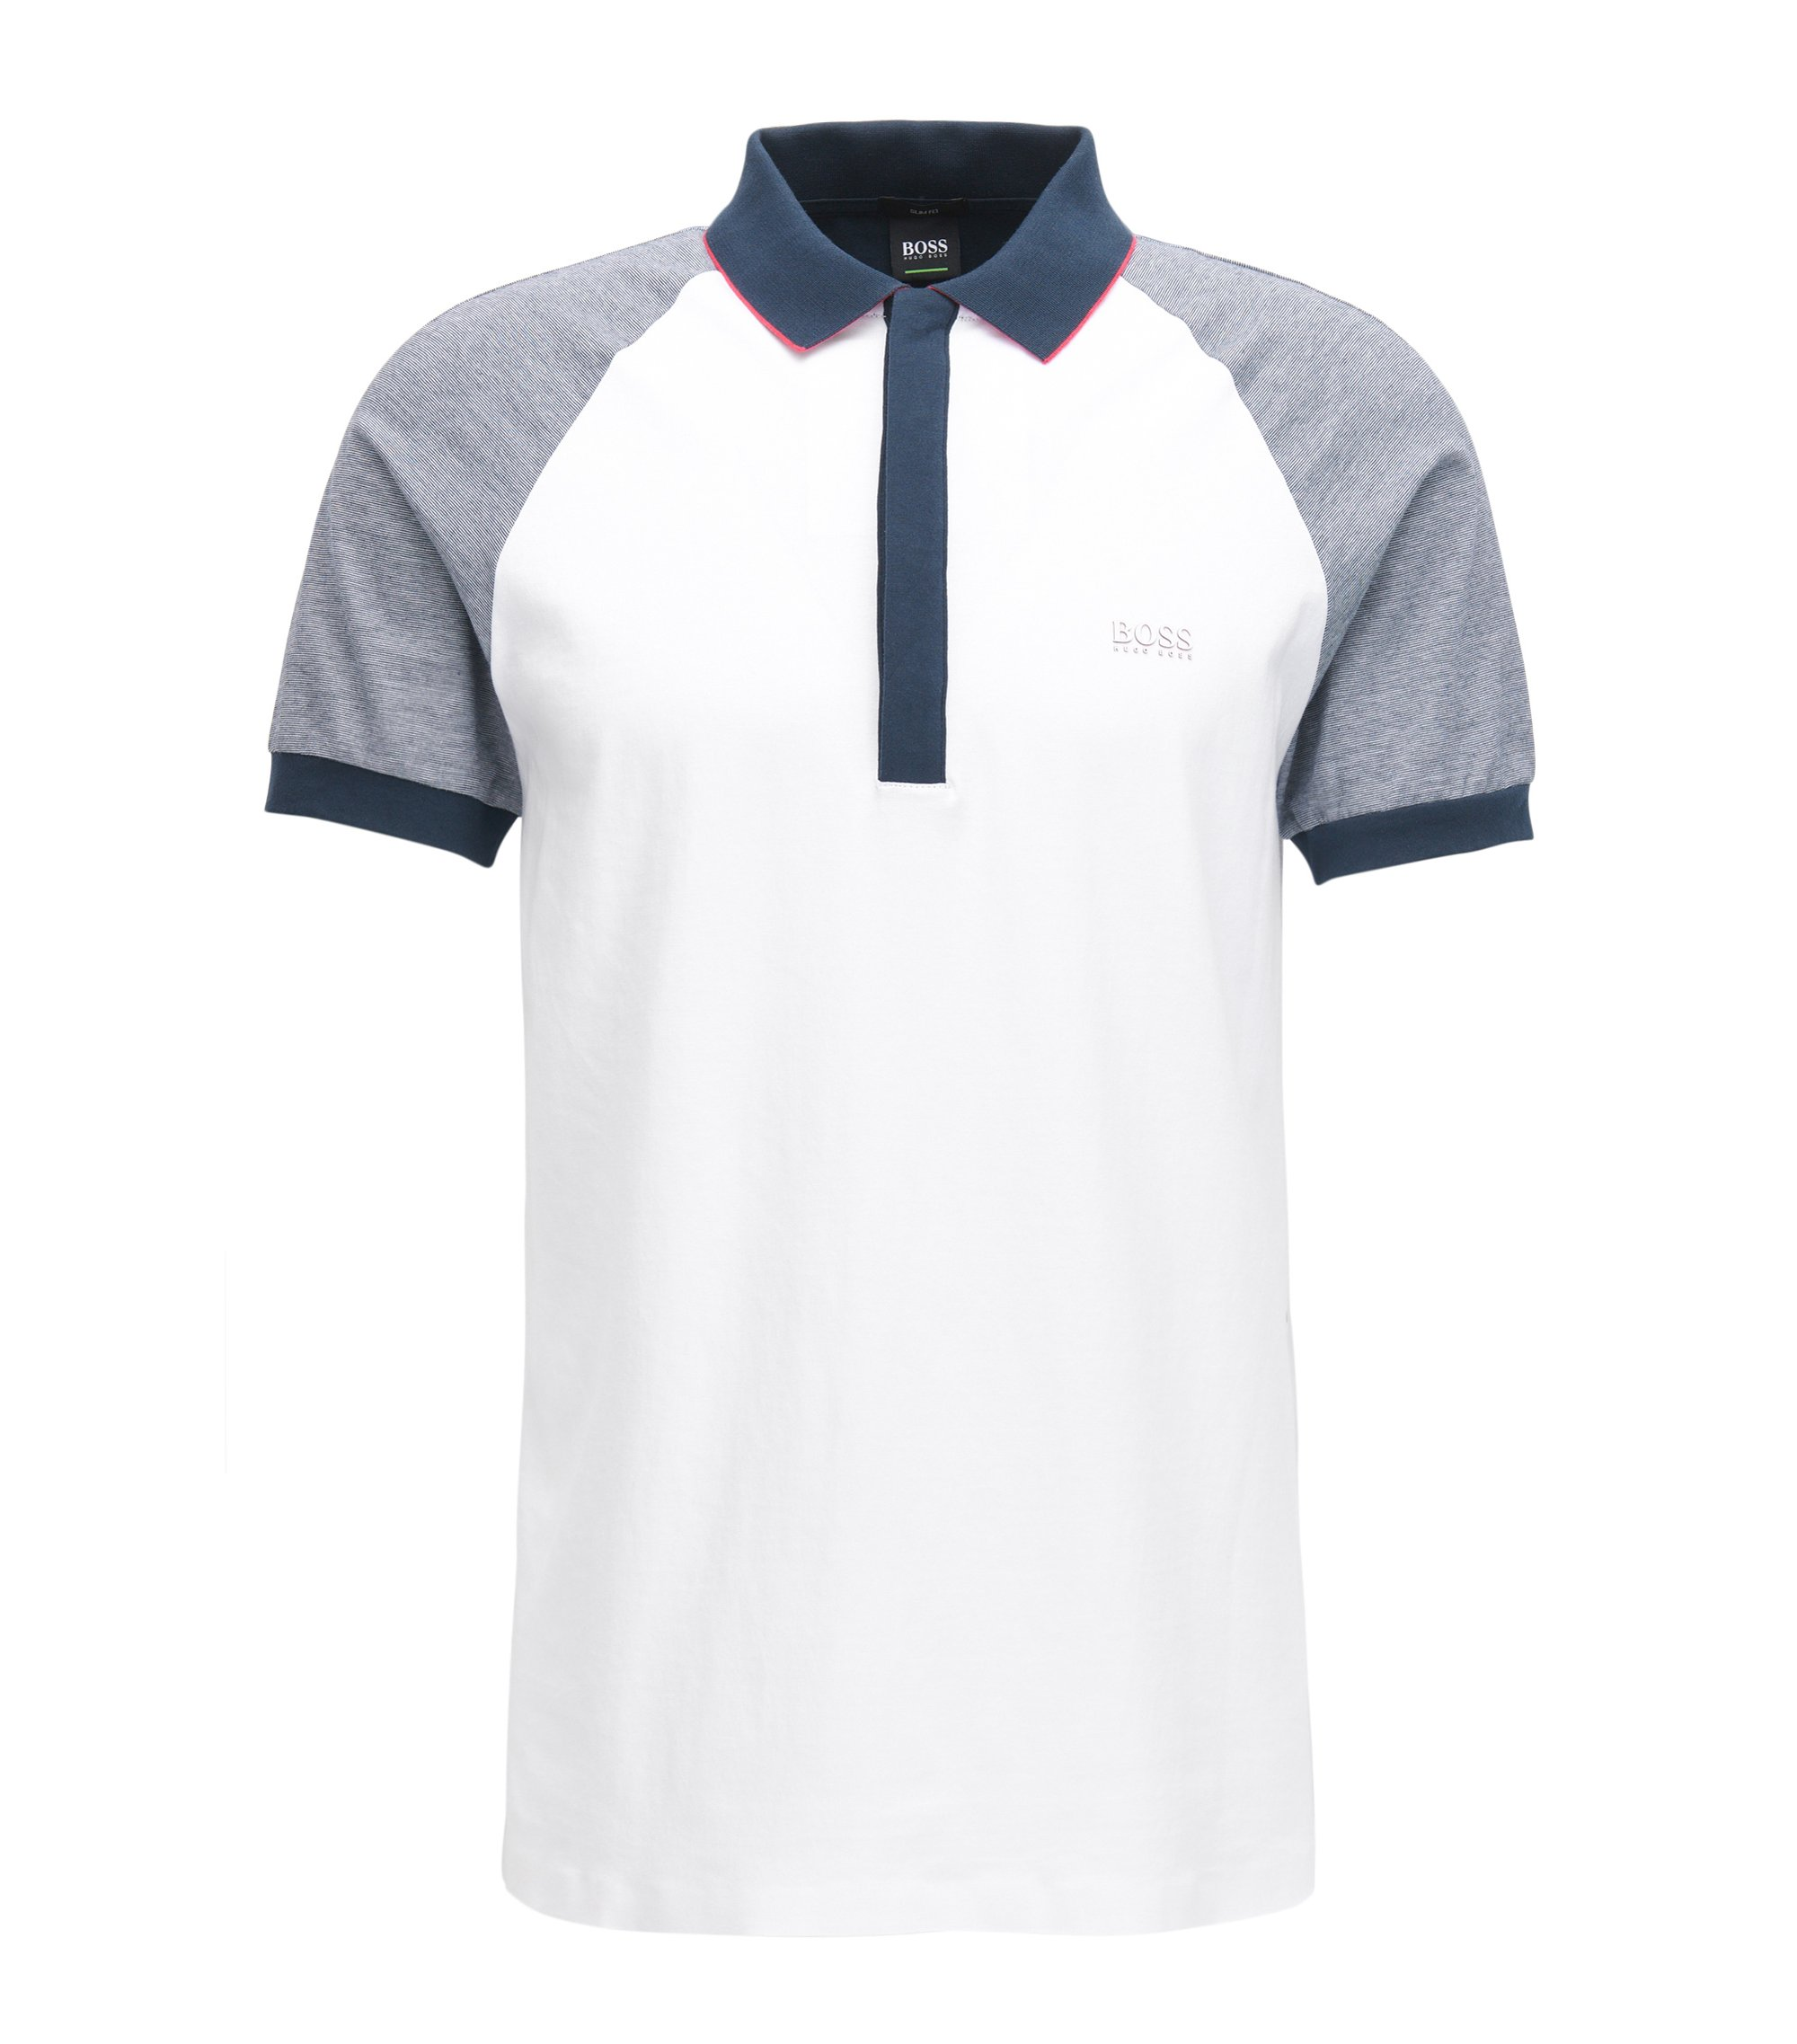 Polo slim fit en punto sencillo sin costuras, Blanco